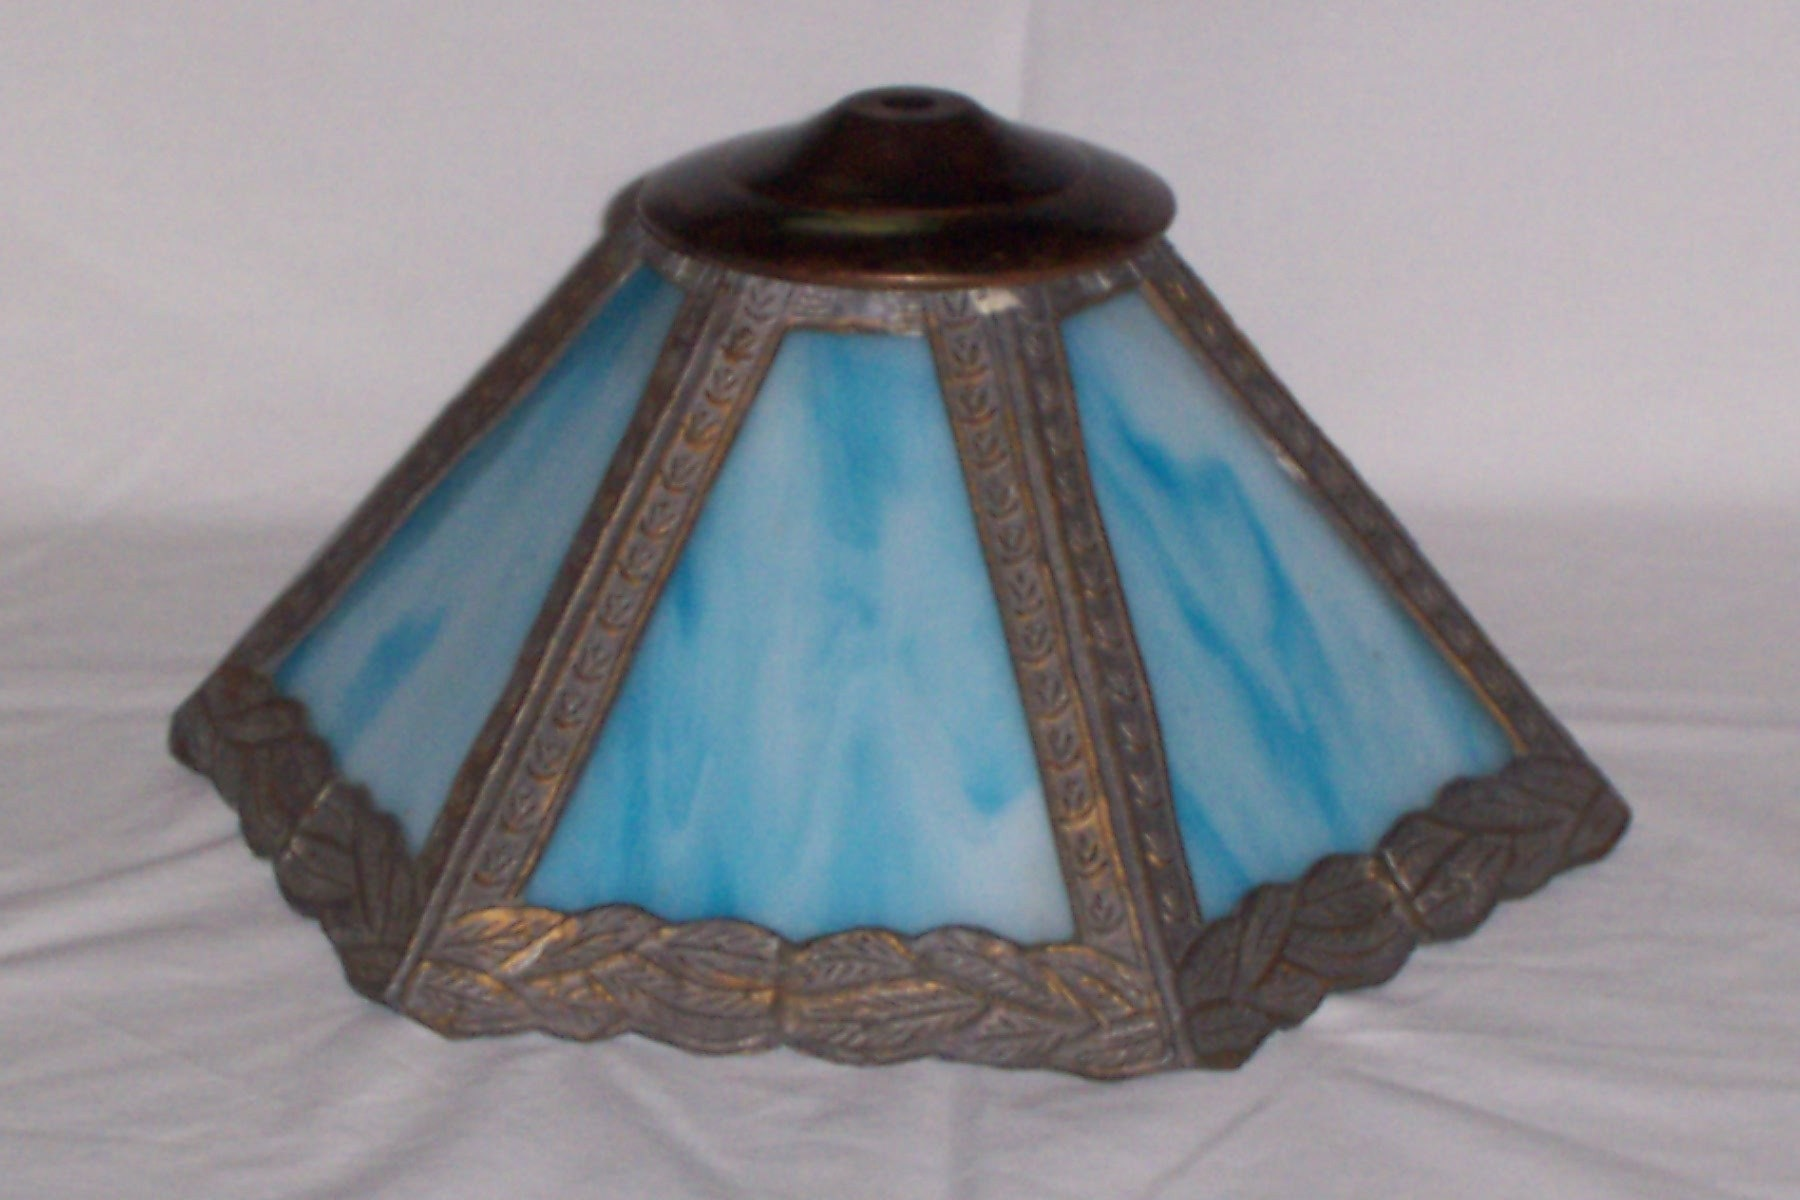 blue slag glass lamp shade art deco art nouveau. Black Bedroom Furniture Sets. Home Design Ideas